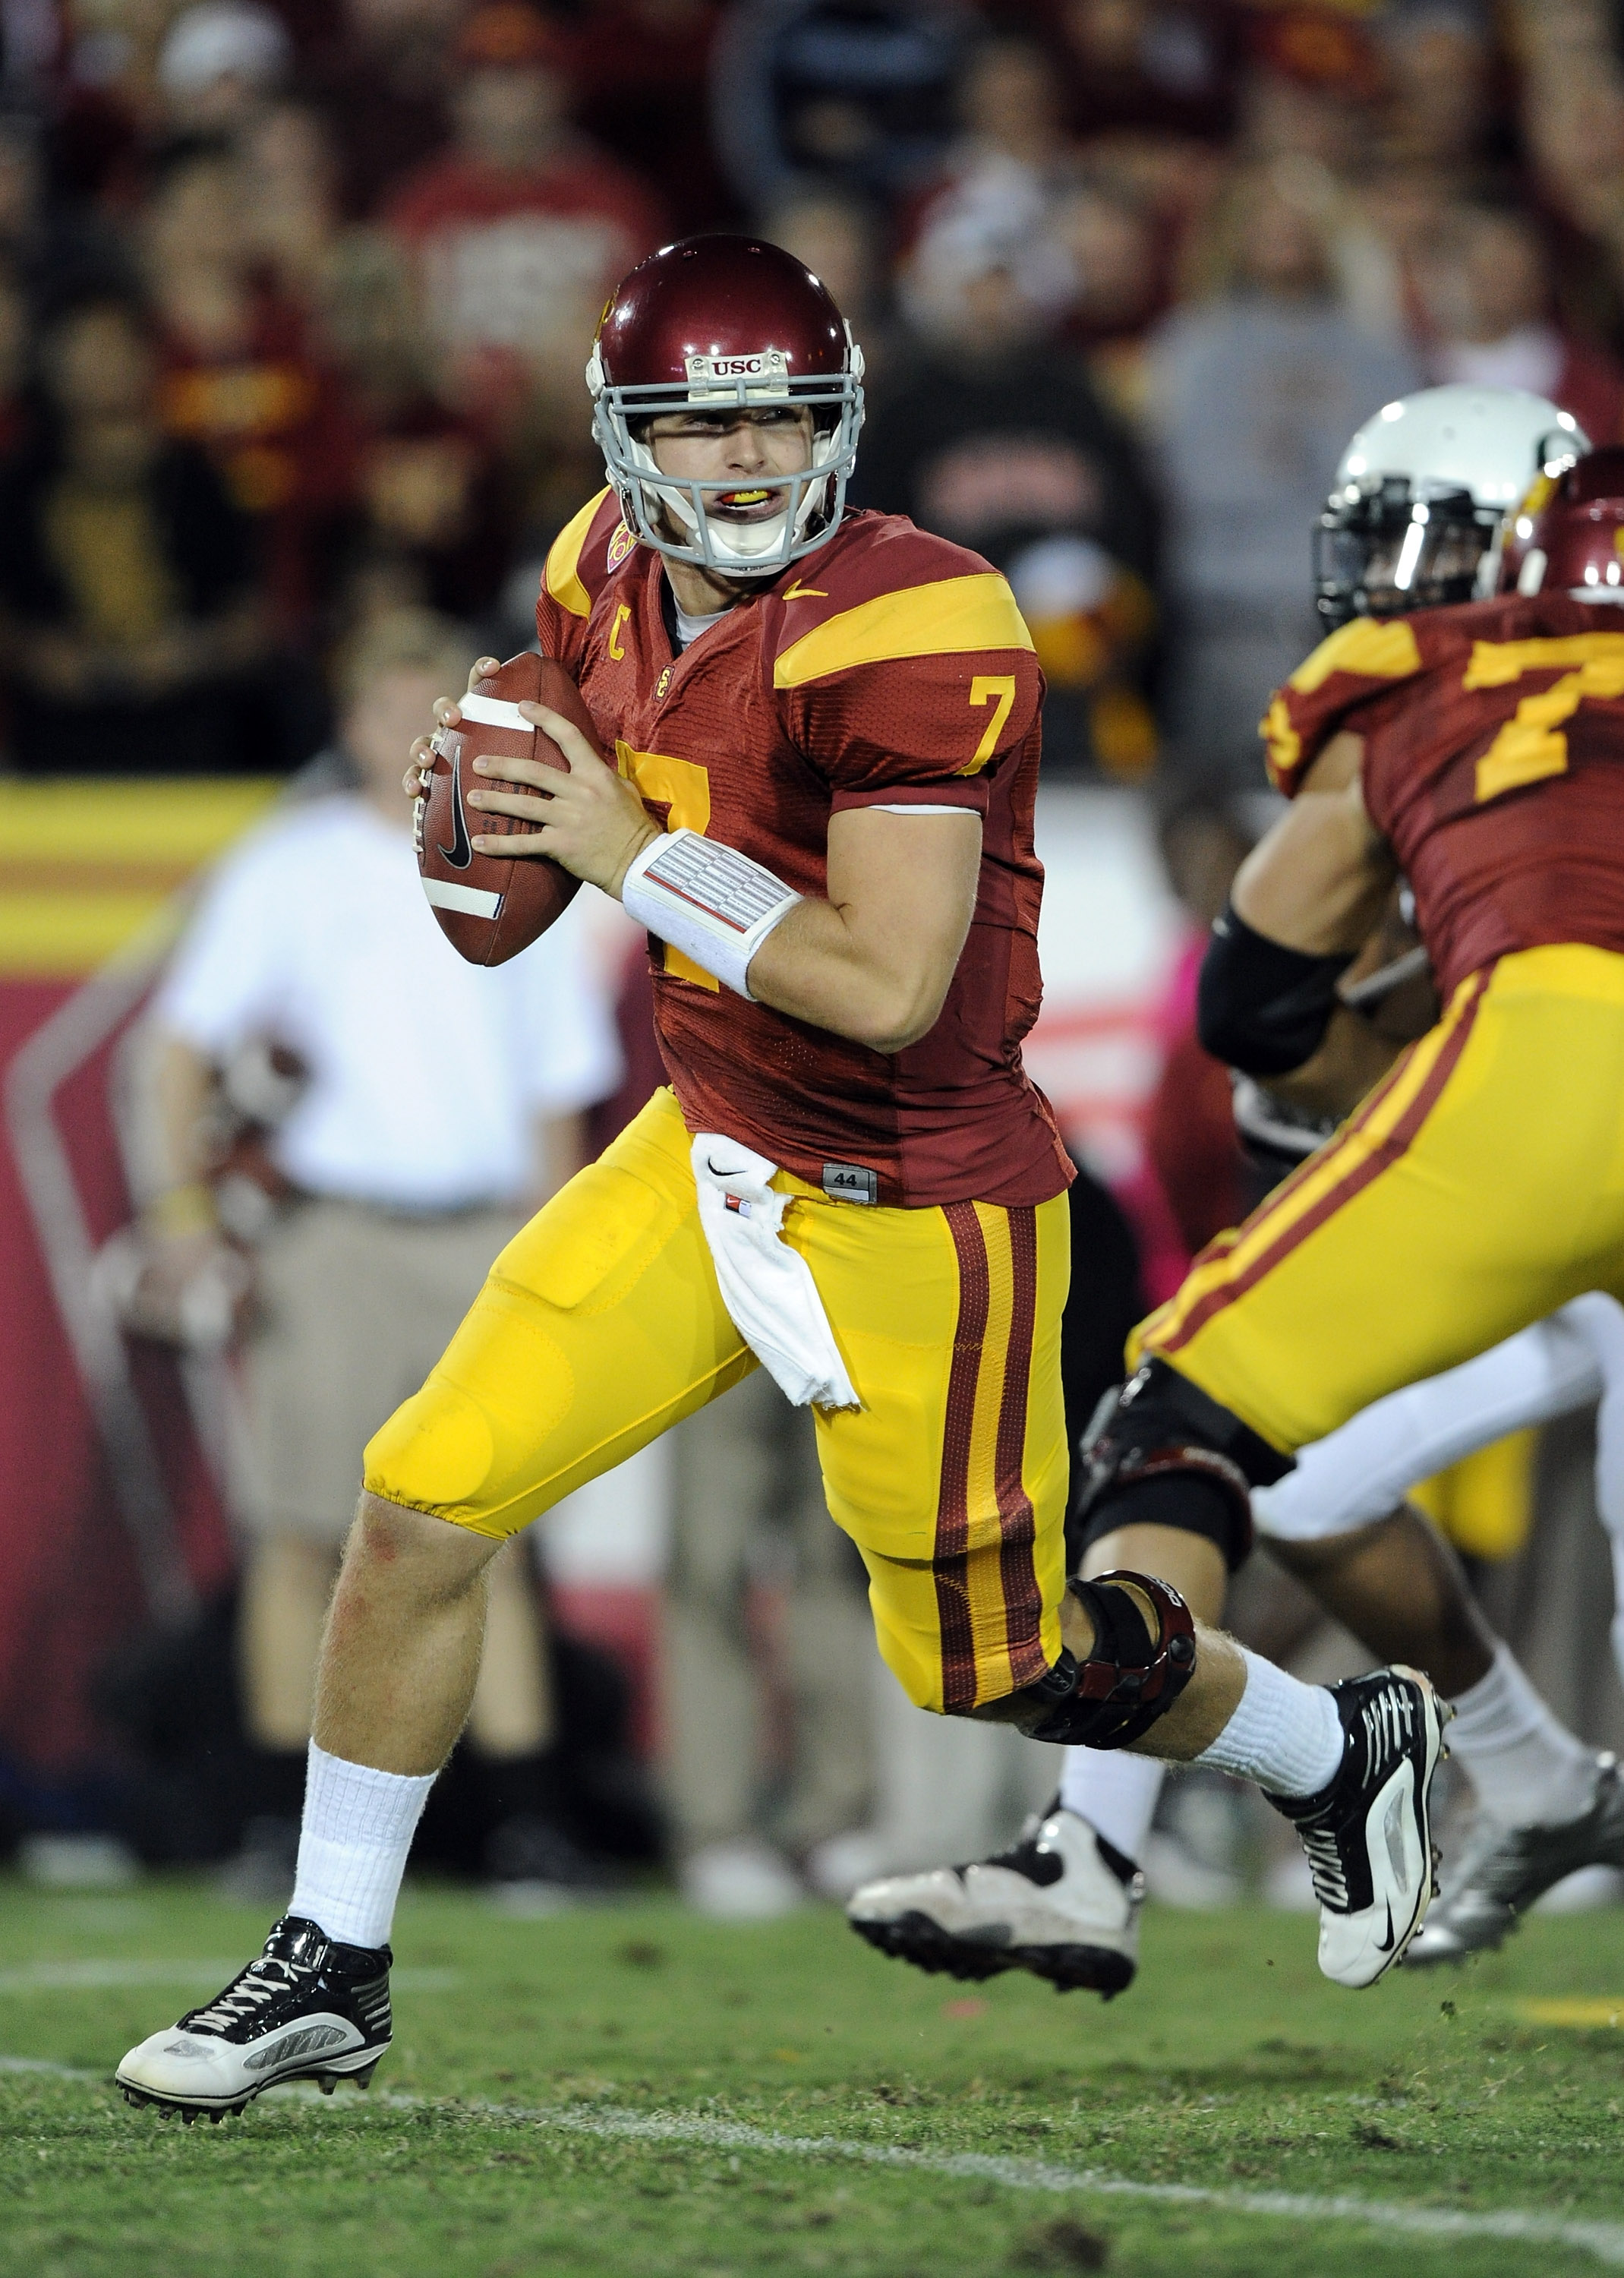 LOS ANGELES, CA - OCTOBER 30:  Matt Barkley #7 of the USC Trojans rolls out of the pocket against the Oregon Ducks at Los Angeles Memorial Coliseum on October 30, 2010 in Los Angeles, California.  (Photo by Harry How/Getty Images)